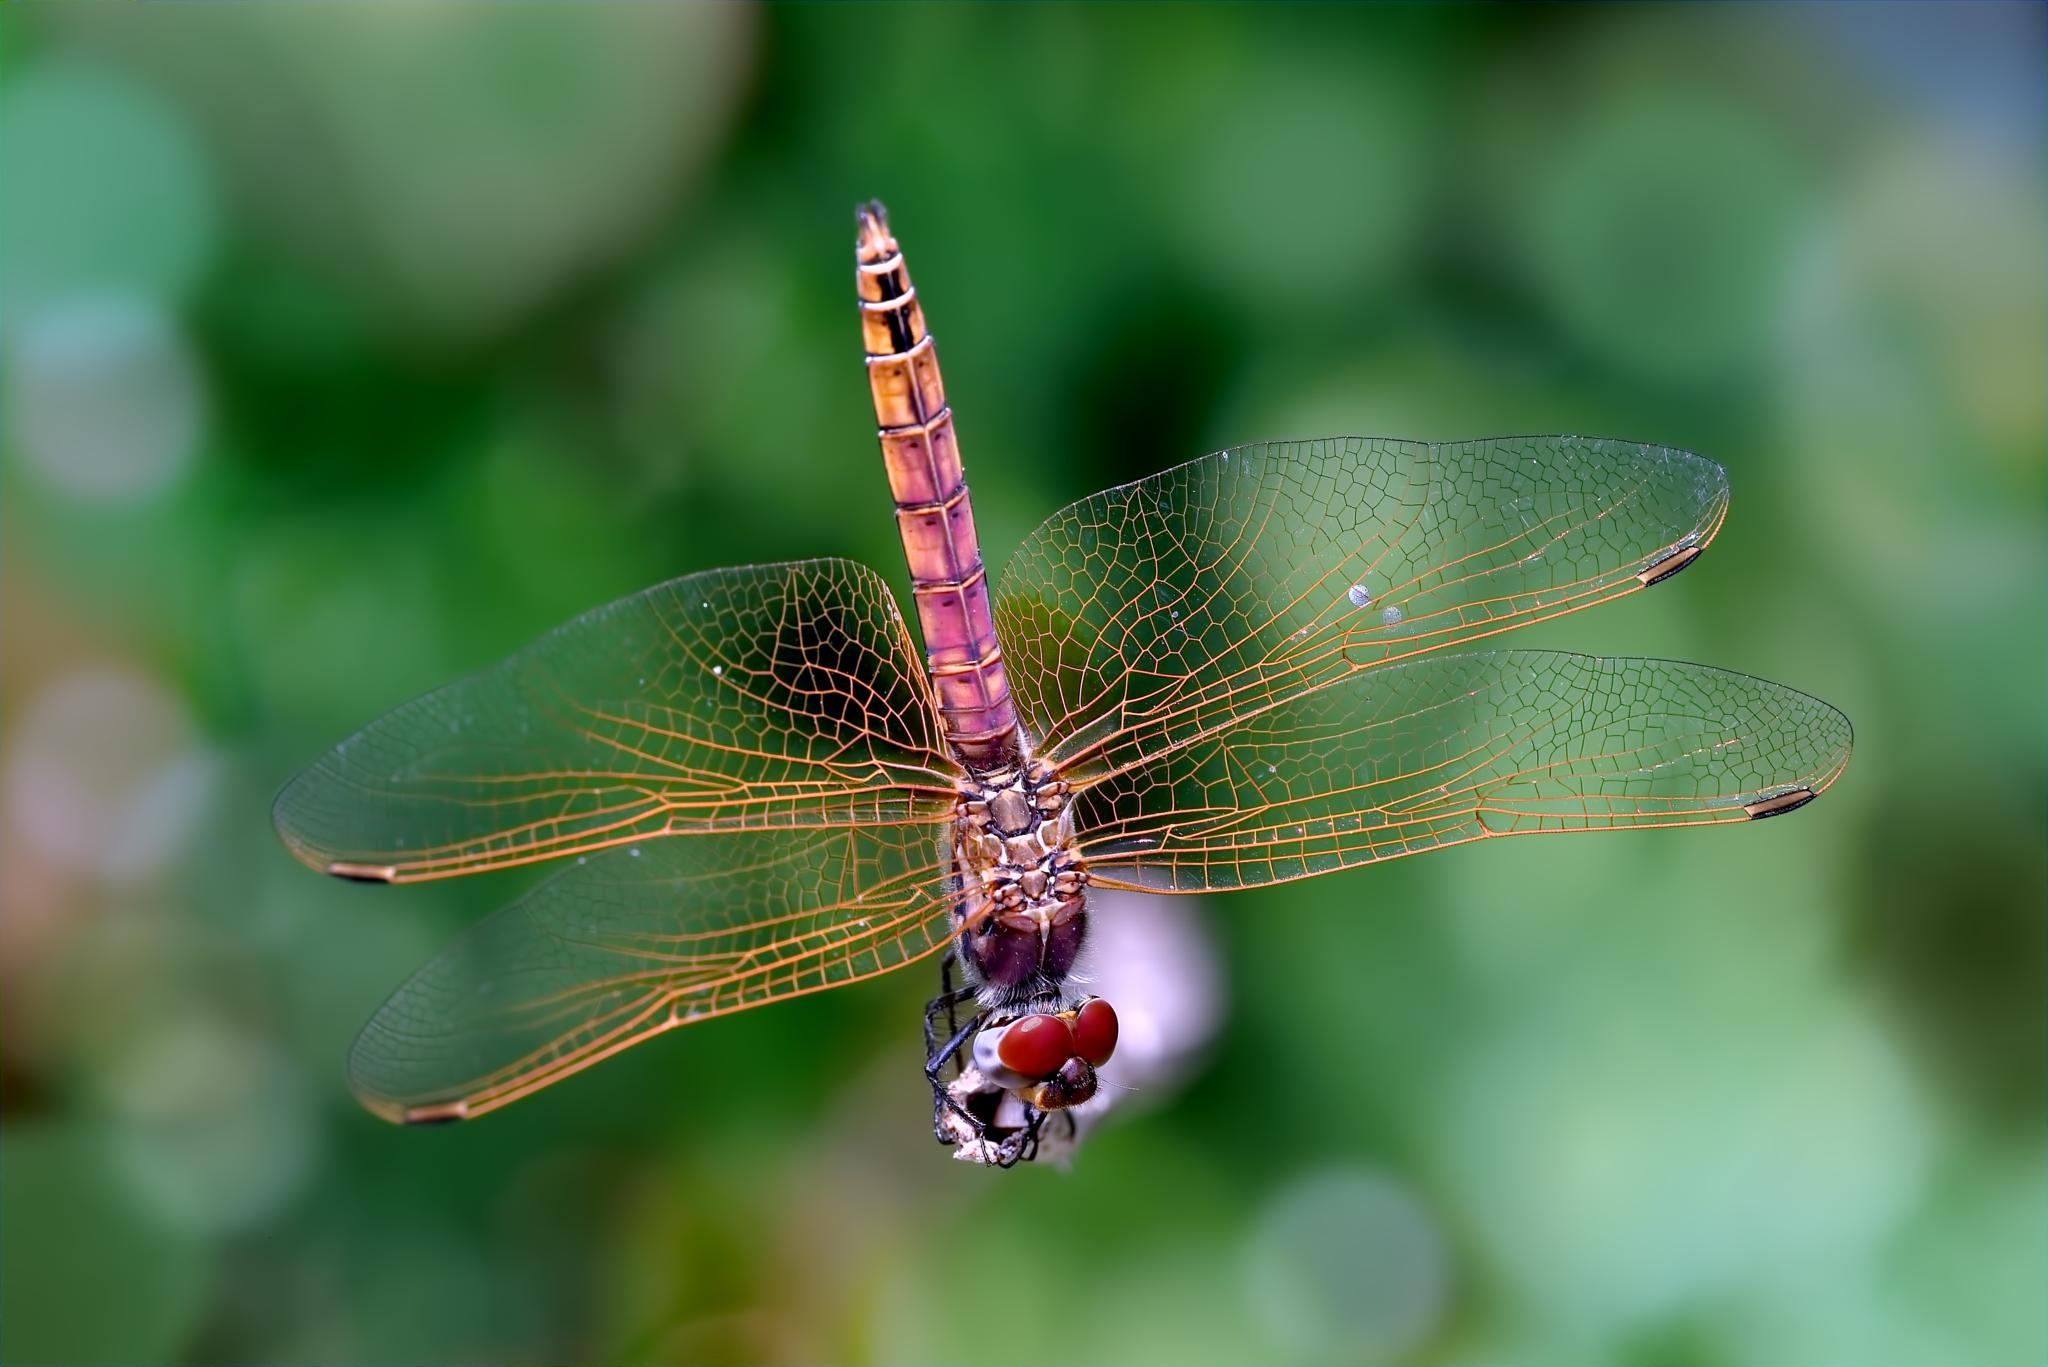 a pair of wings doesn't make you a dragonfly by Marcello Machelli